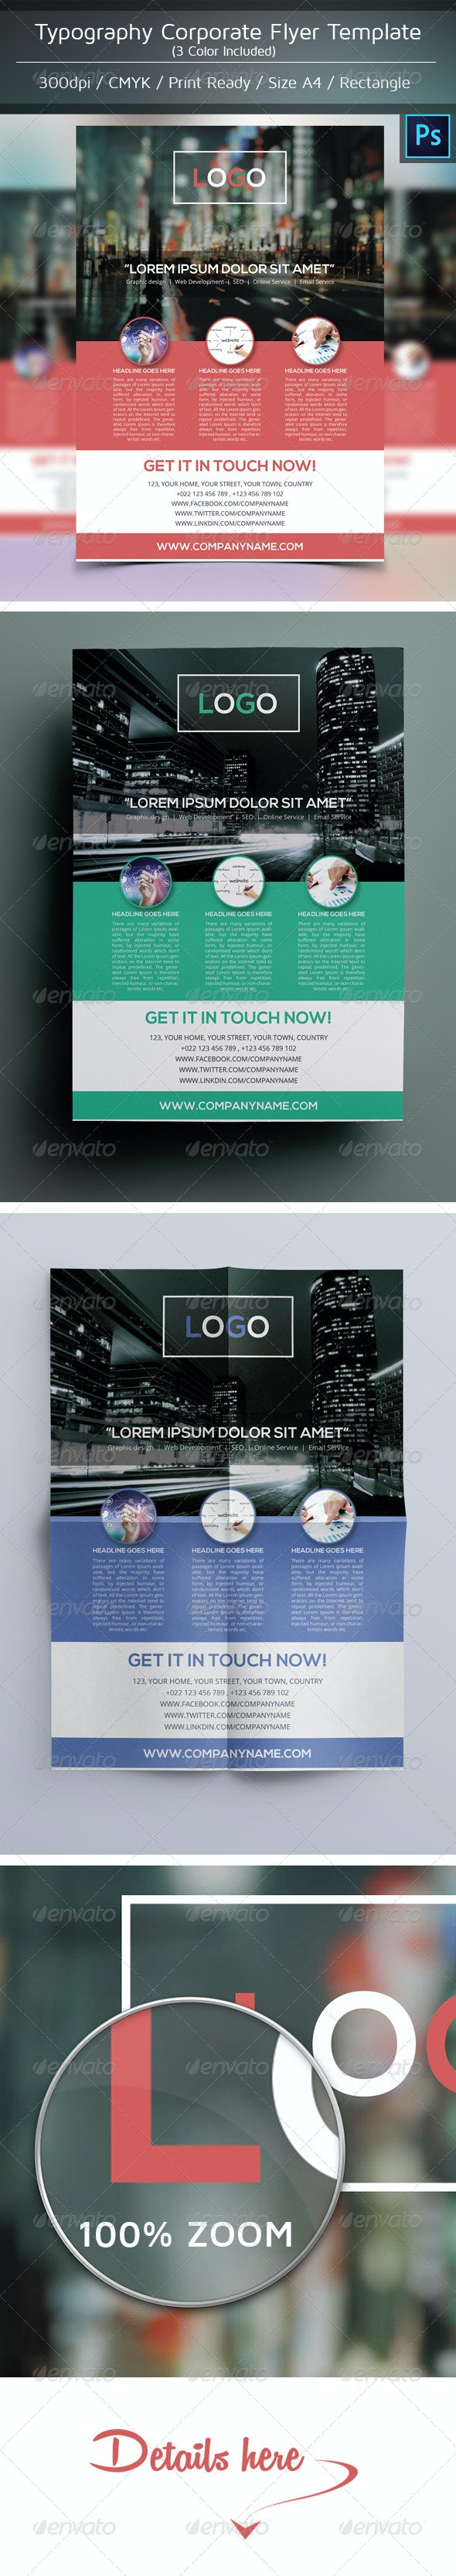 Typography Corporate Flyer Template Design - Corporate Flyers